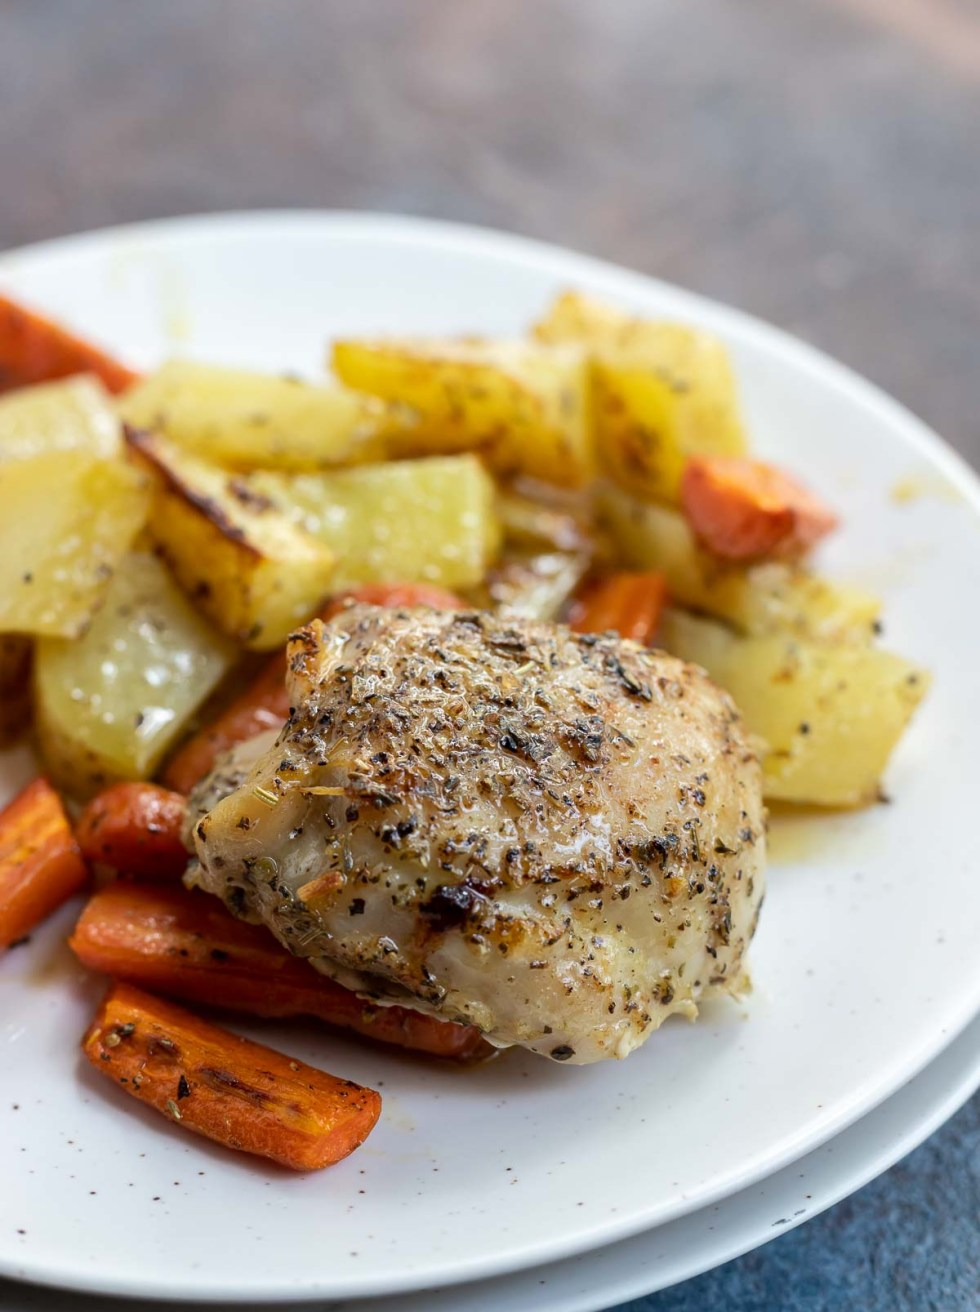 roasted chicken thigh, carrots and potatoes served on white plate